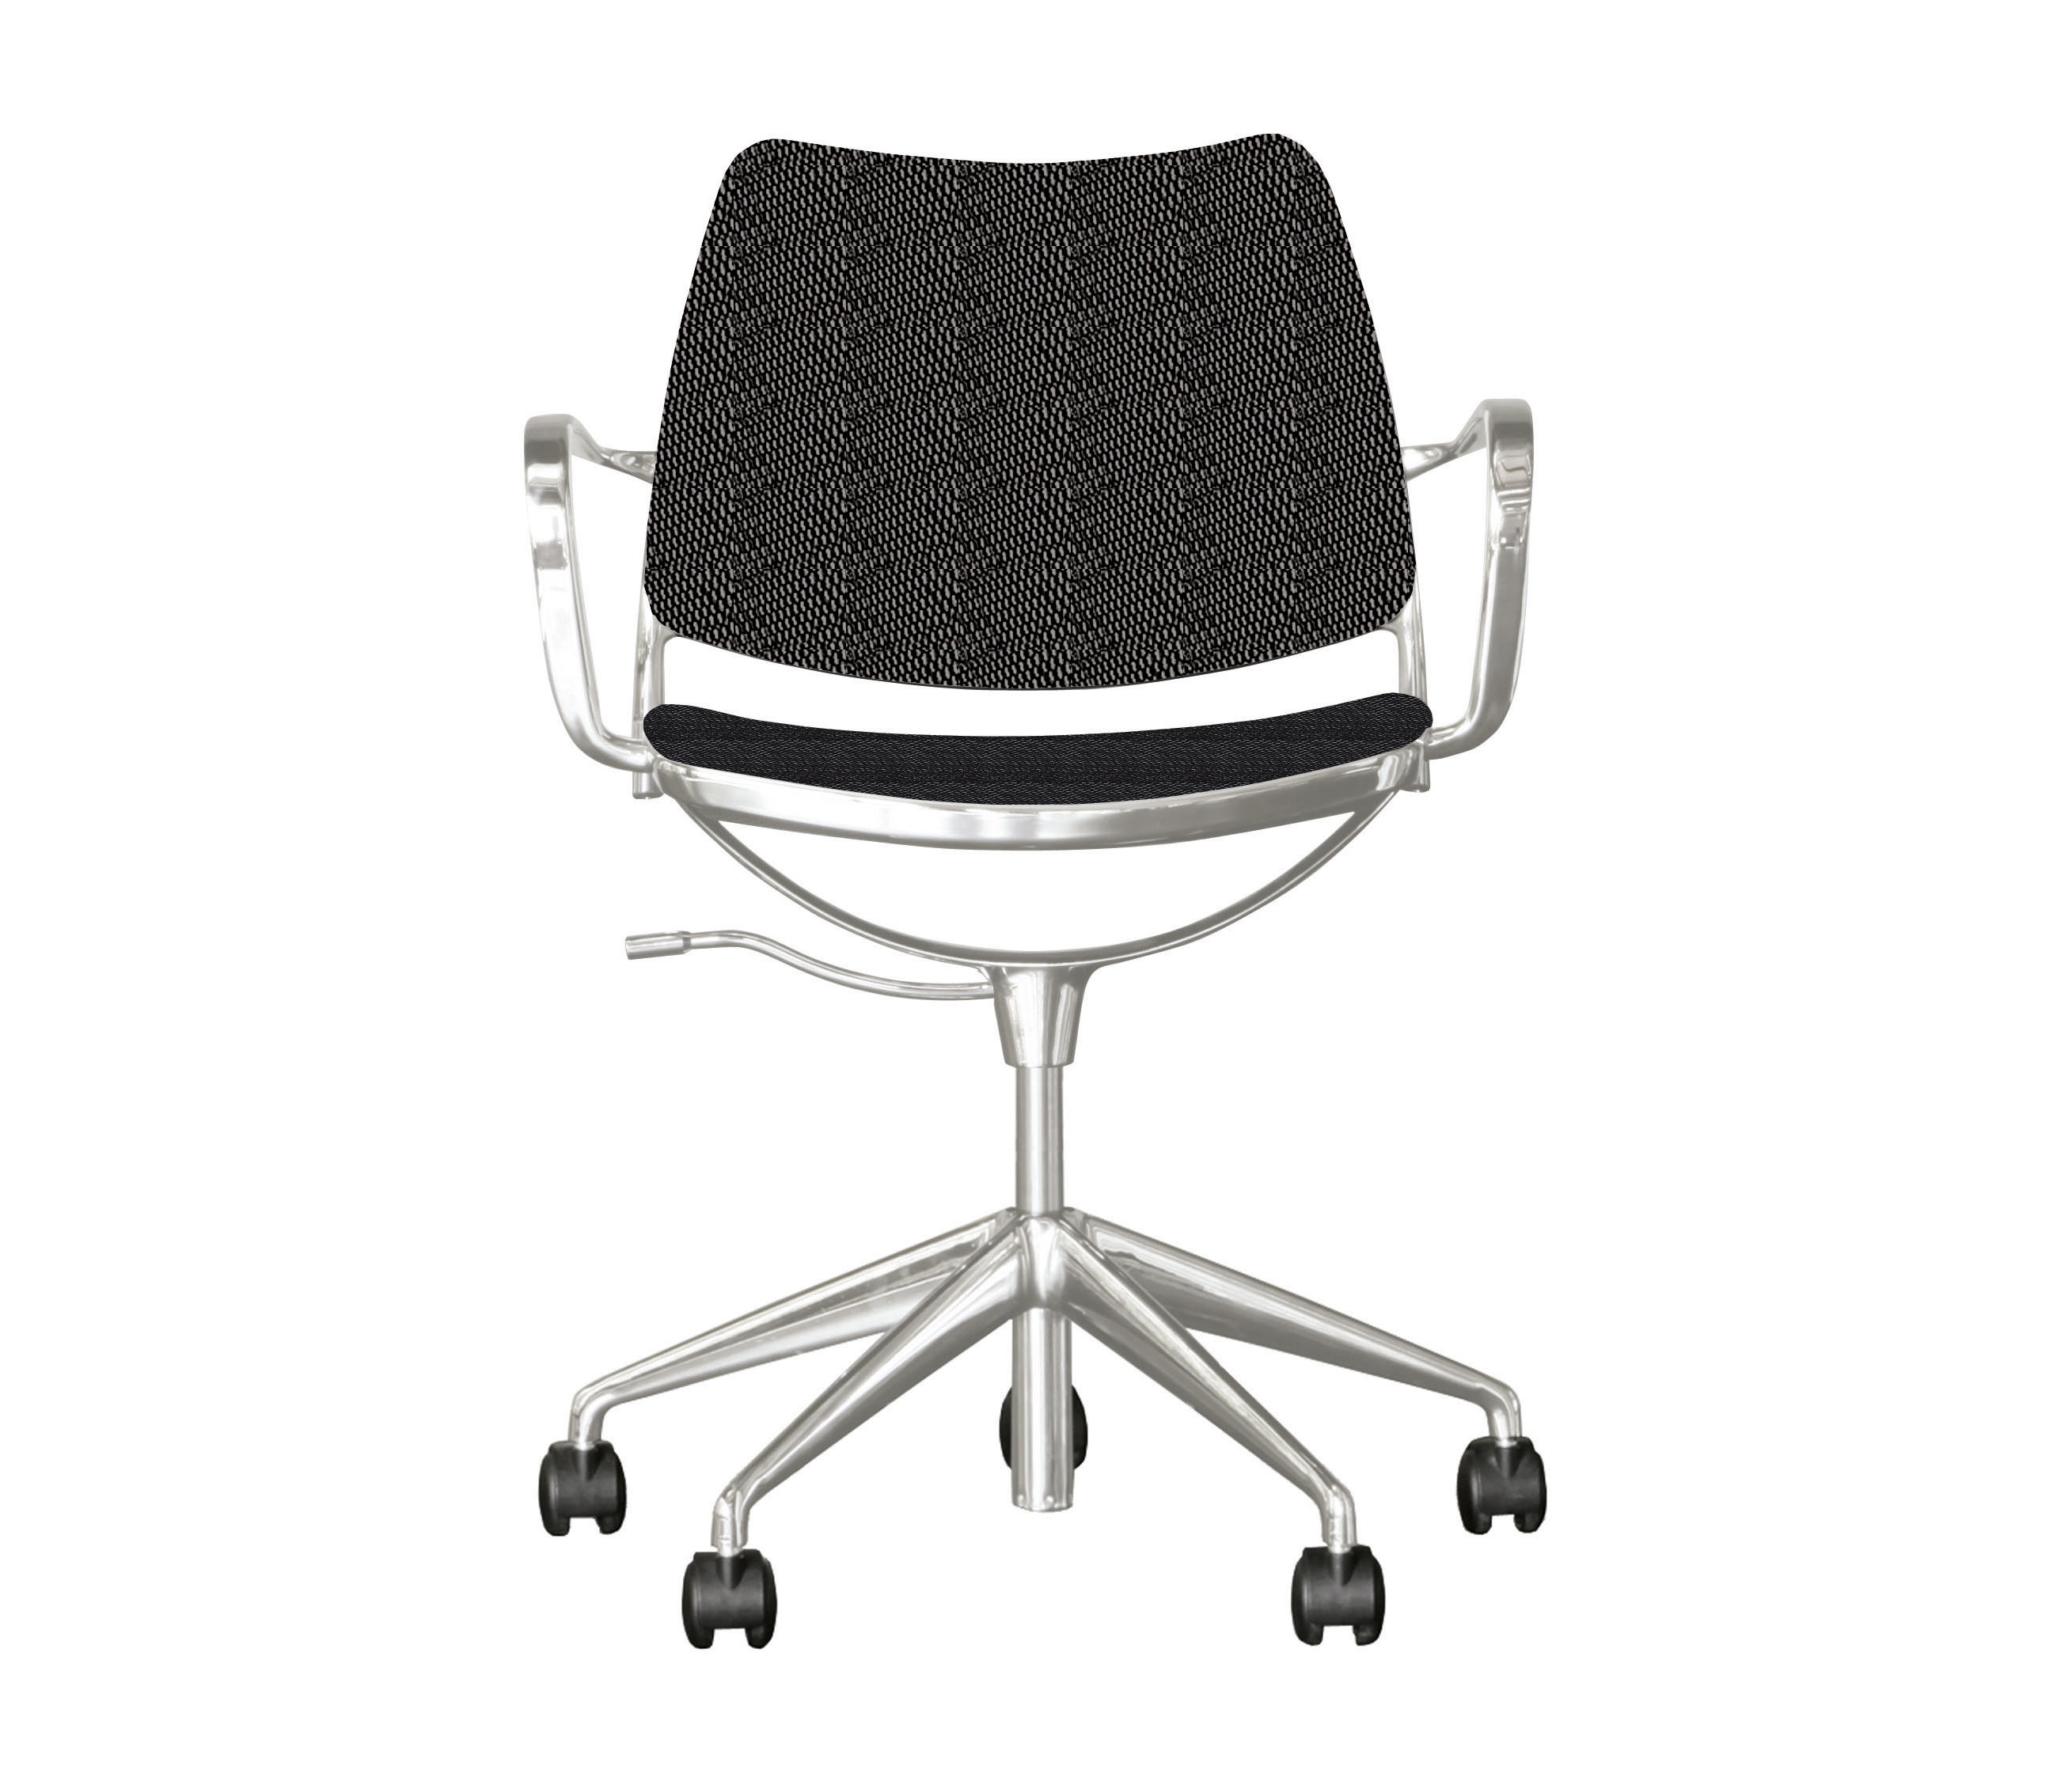 GAS  Office chairs from STUA  Architonic